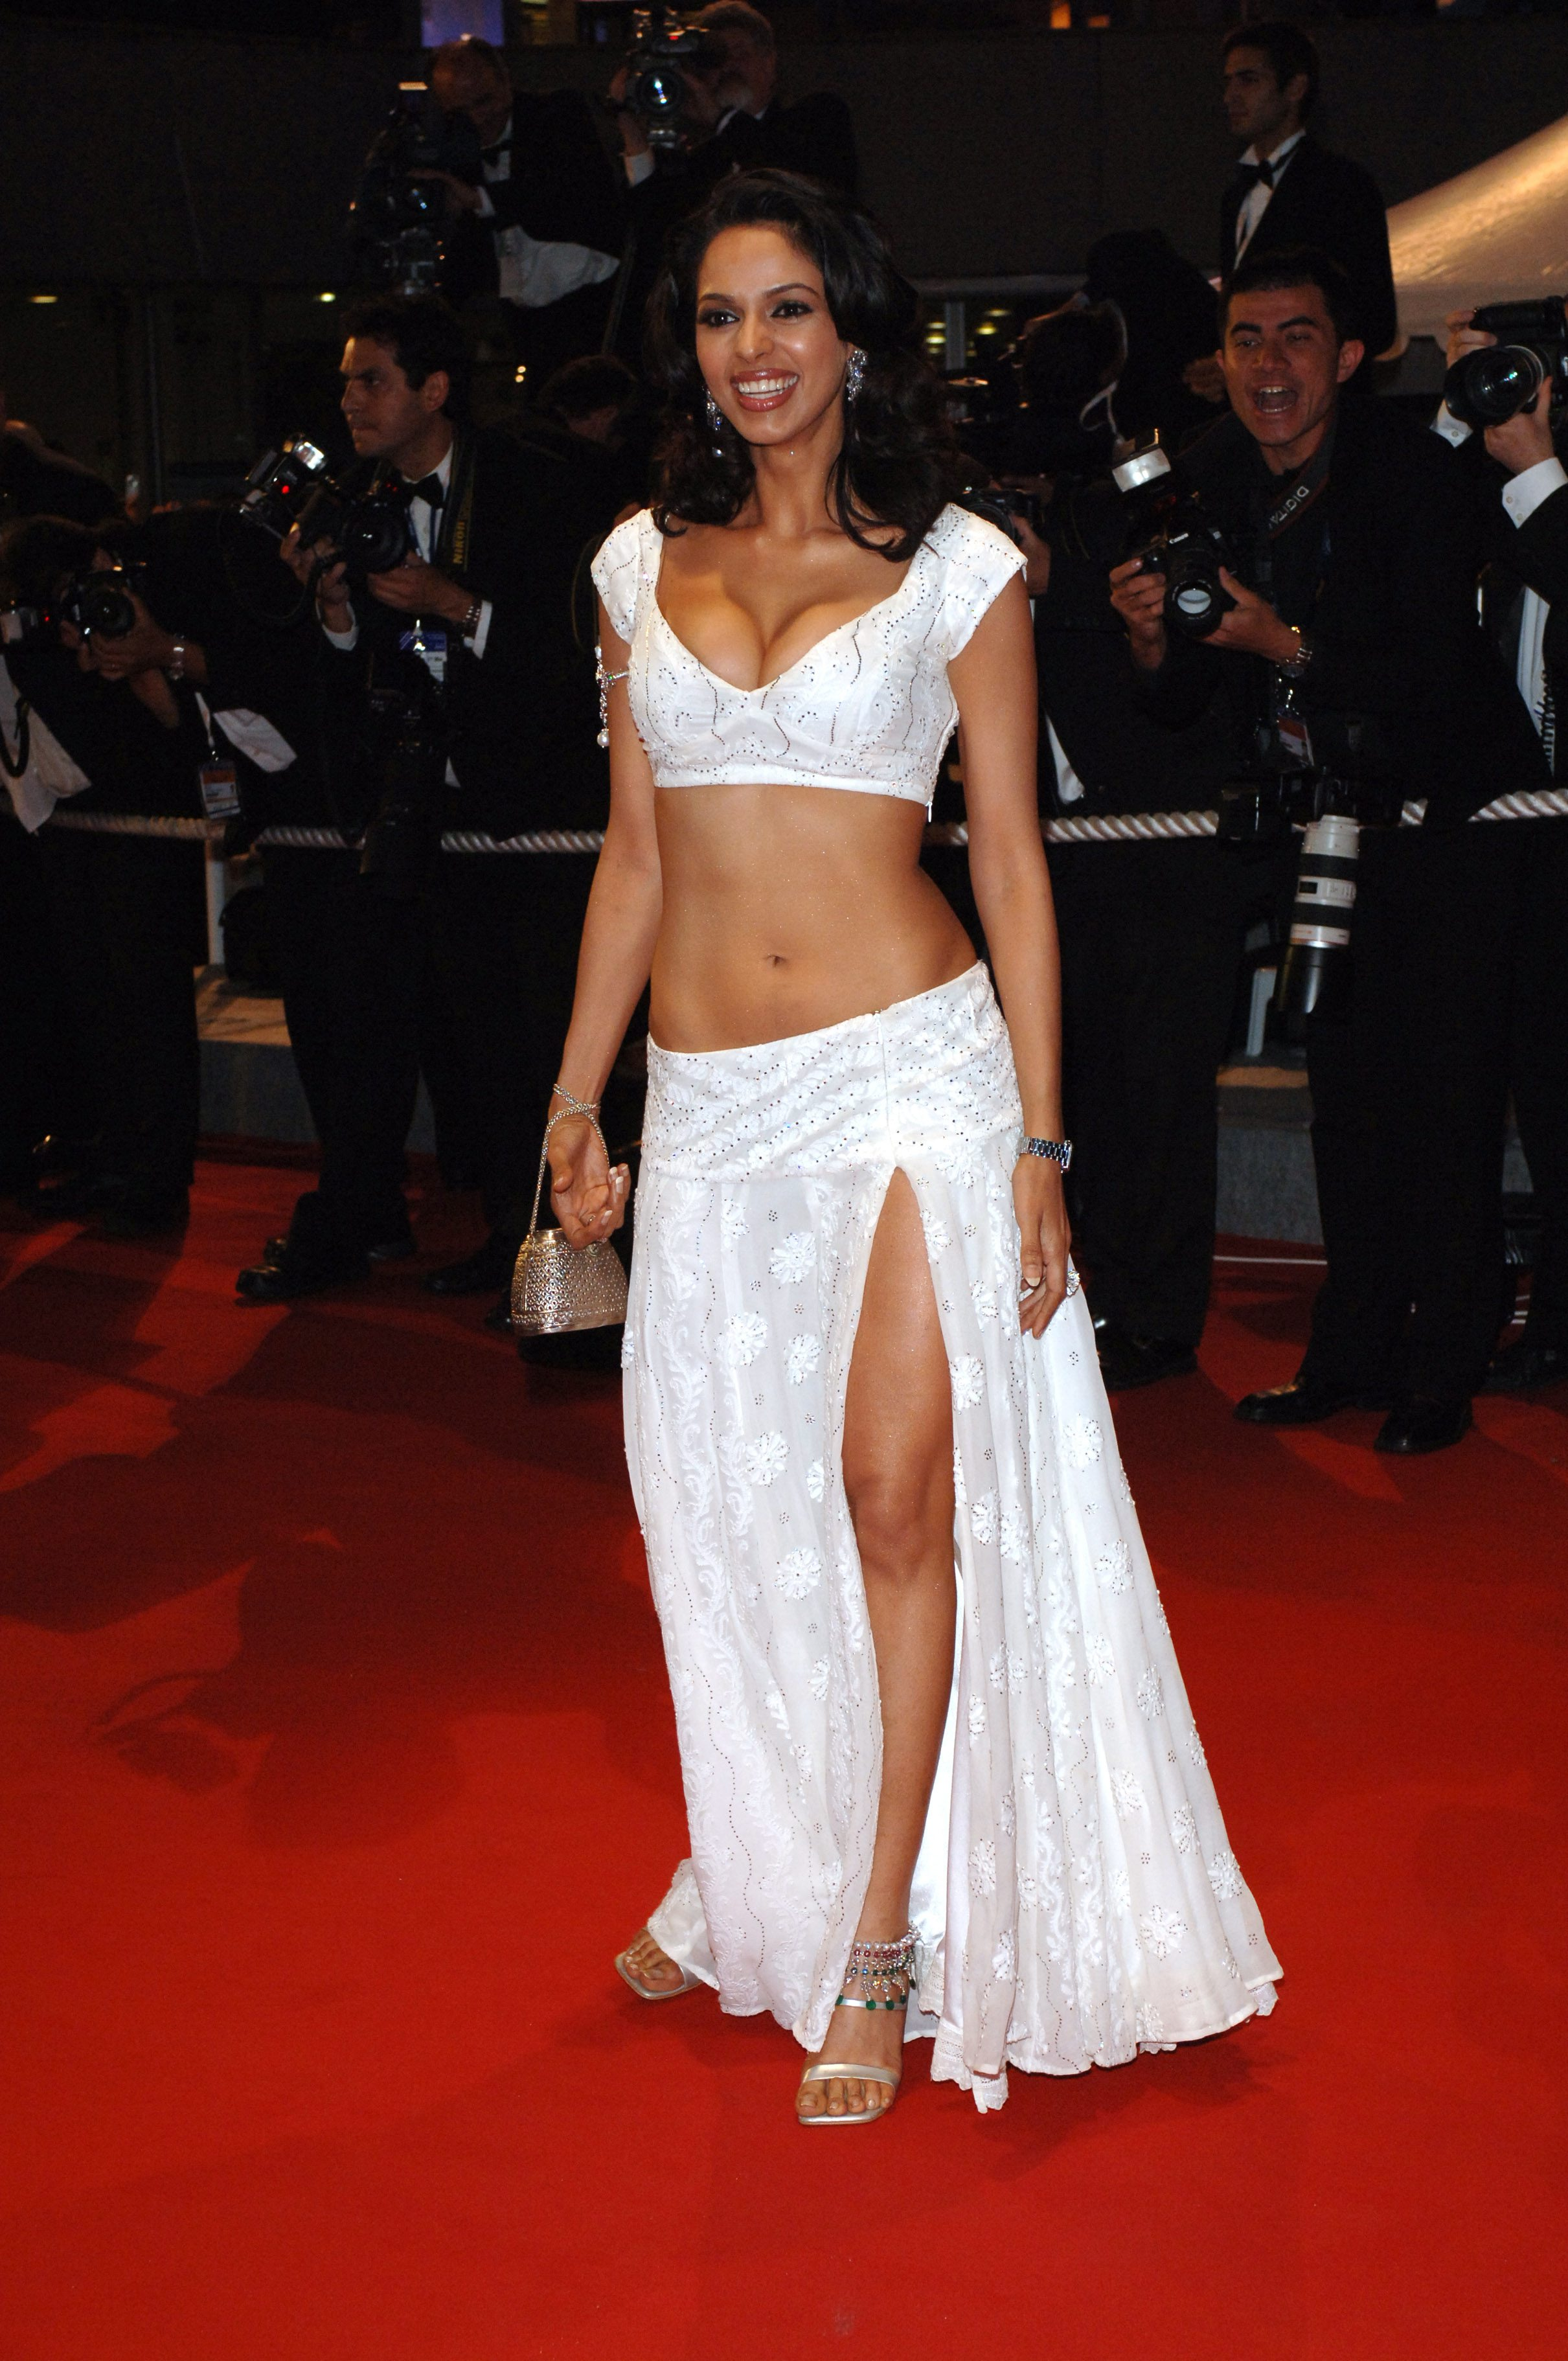 mallika sherawat veganmallika sherawat instagram, mallika sherawat wikipedia, mallika sherawat vegan, mallika sherawat first movie, mallika sherawat body measurement, mallika sherawat belly dance, mallika sherawat film, mallika sherawat age, mallika sherawat films list, mallika sherawat, mallika sherawat facebook, mallika sherawat movies list